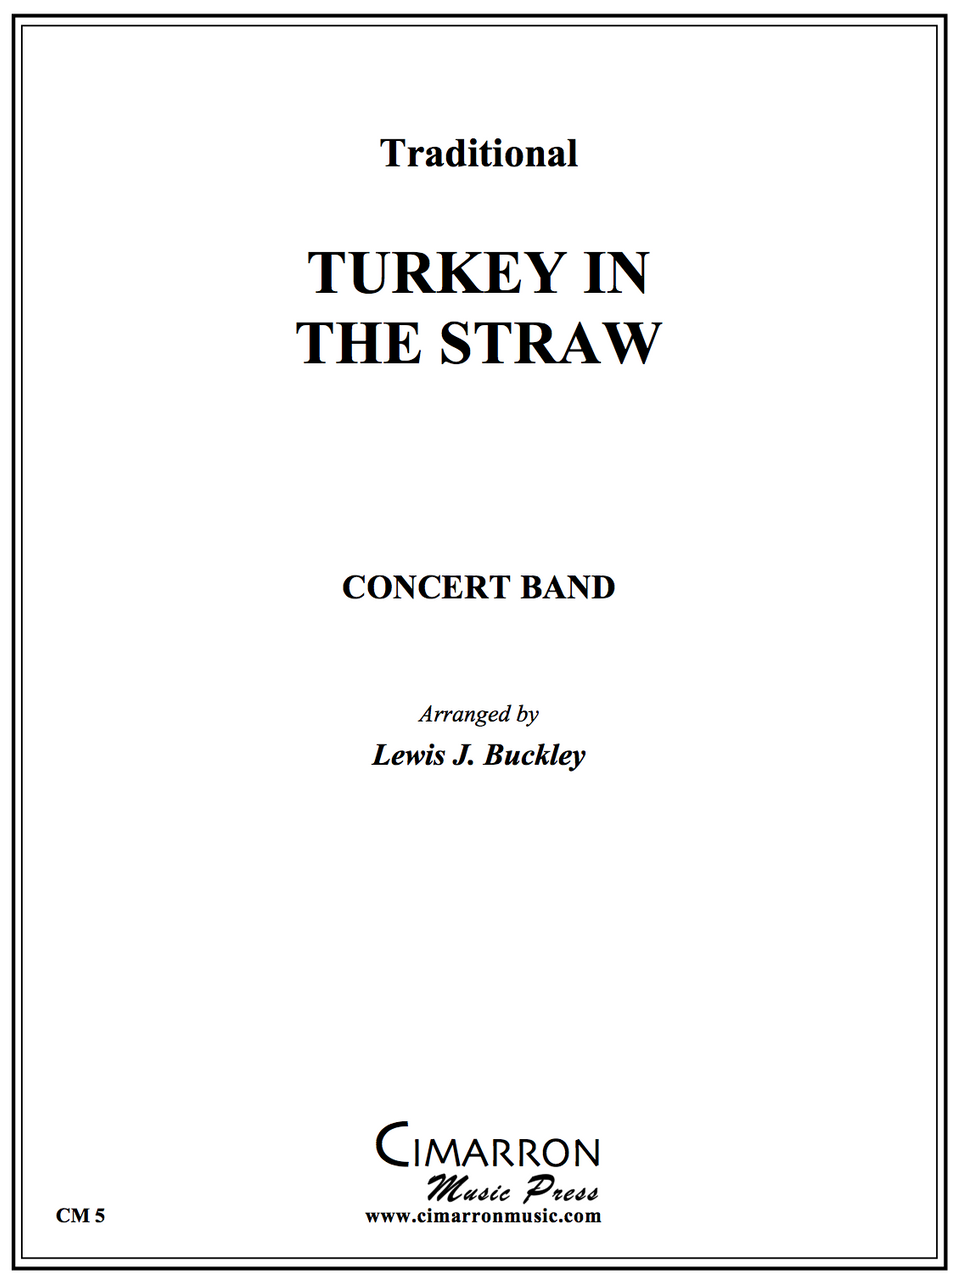 Traditional - Turkey in the Straw - Concert Band